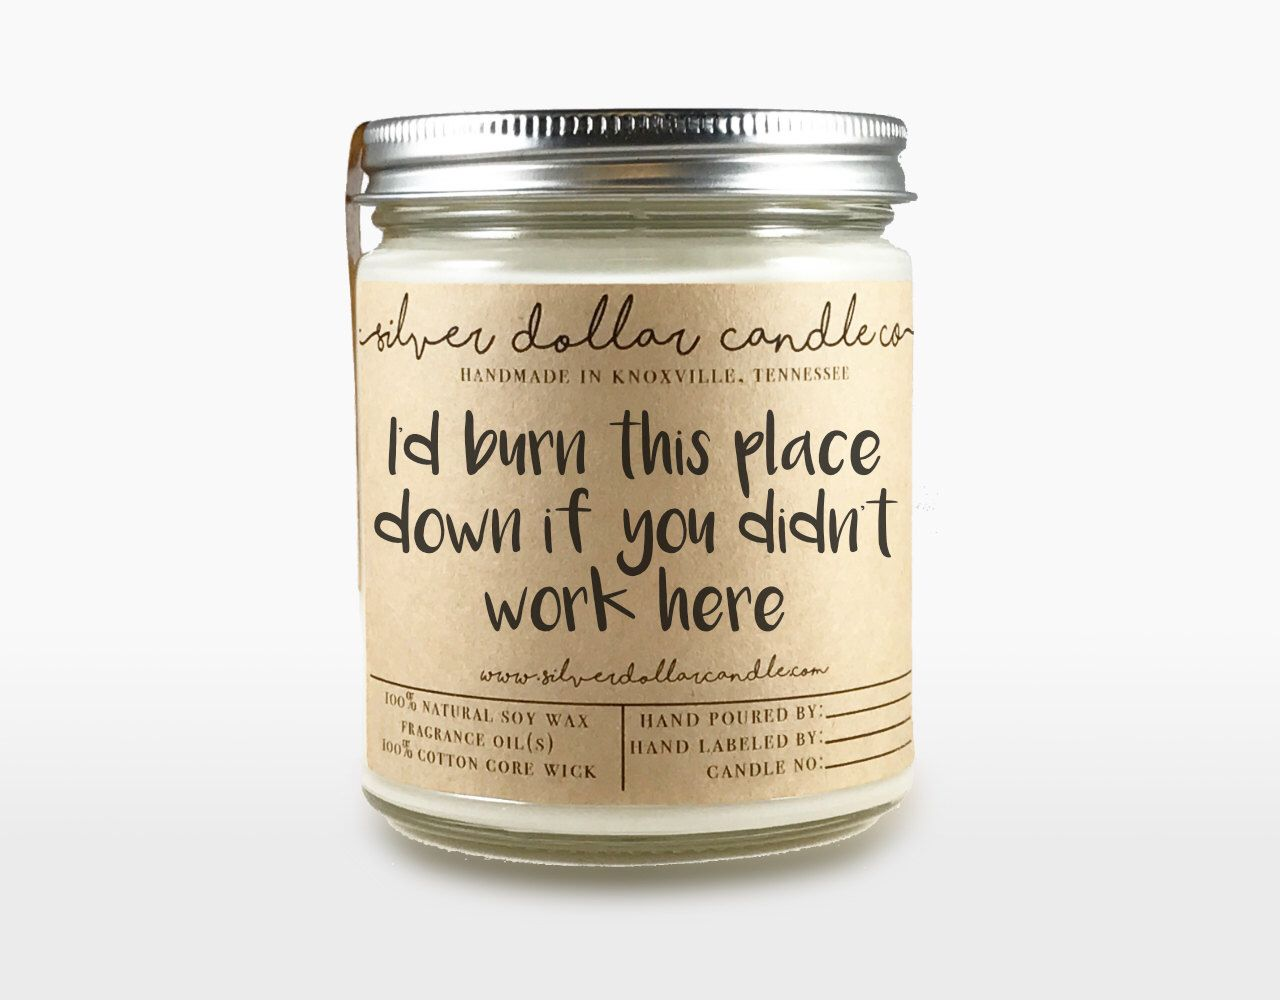 d7d6c17a74a9c Co-worker Candle Gift | Co worker gift, Gift for coworker, Gift for ...